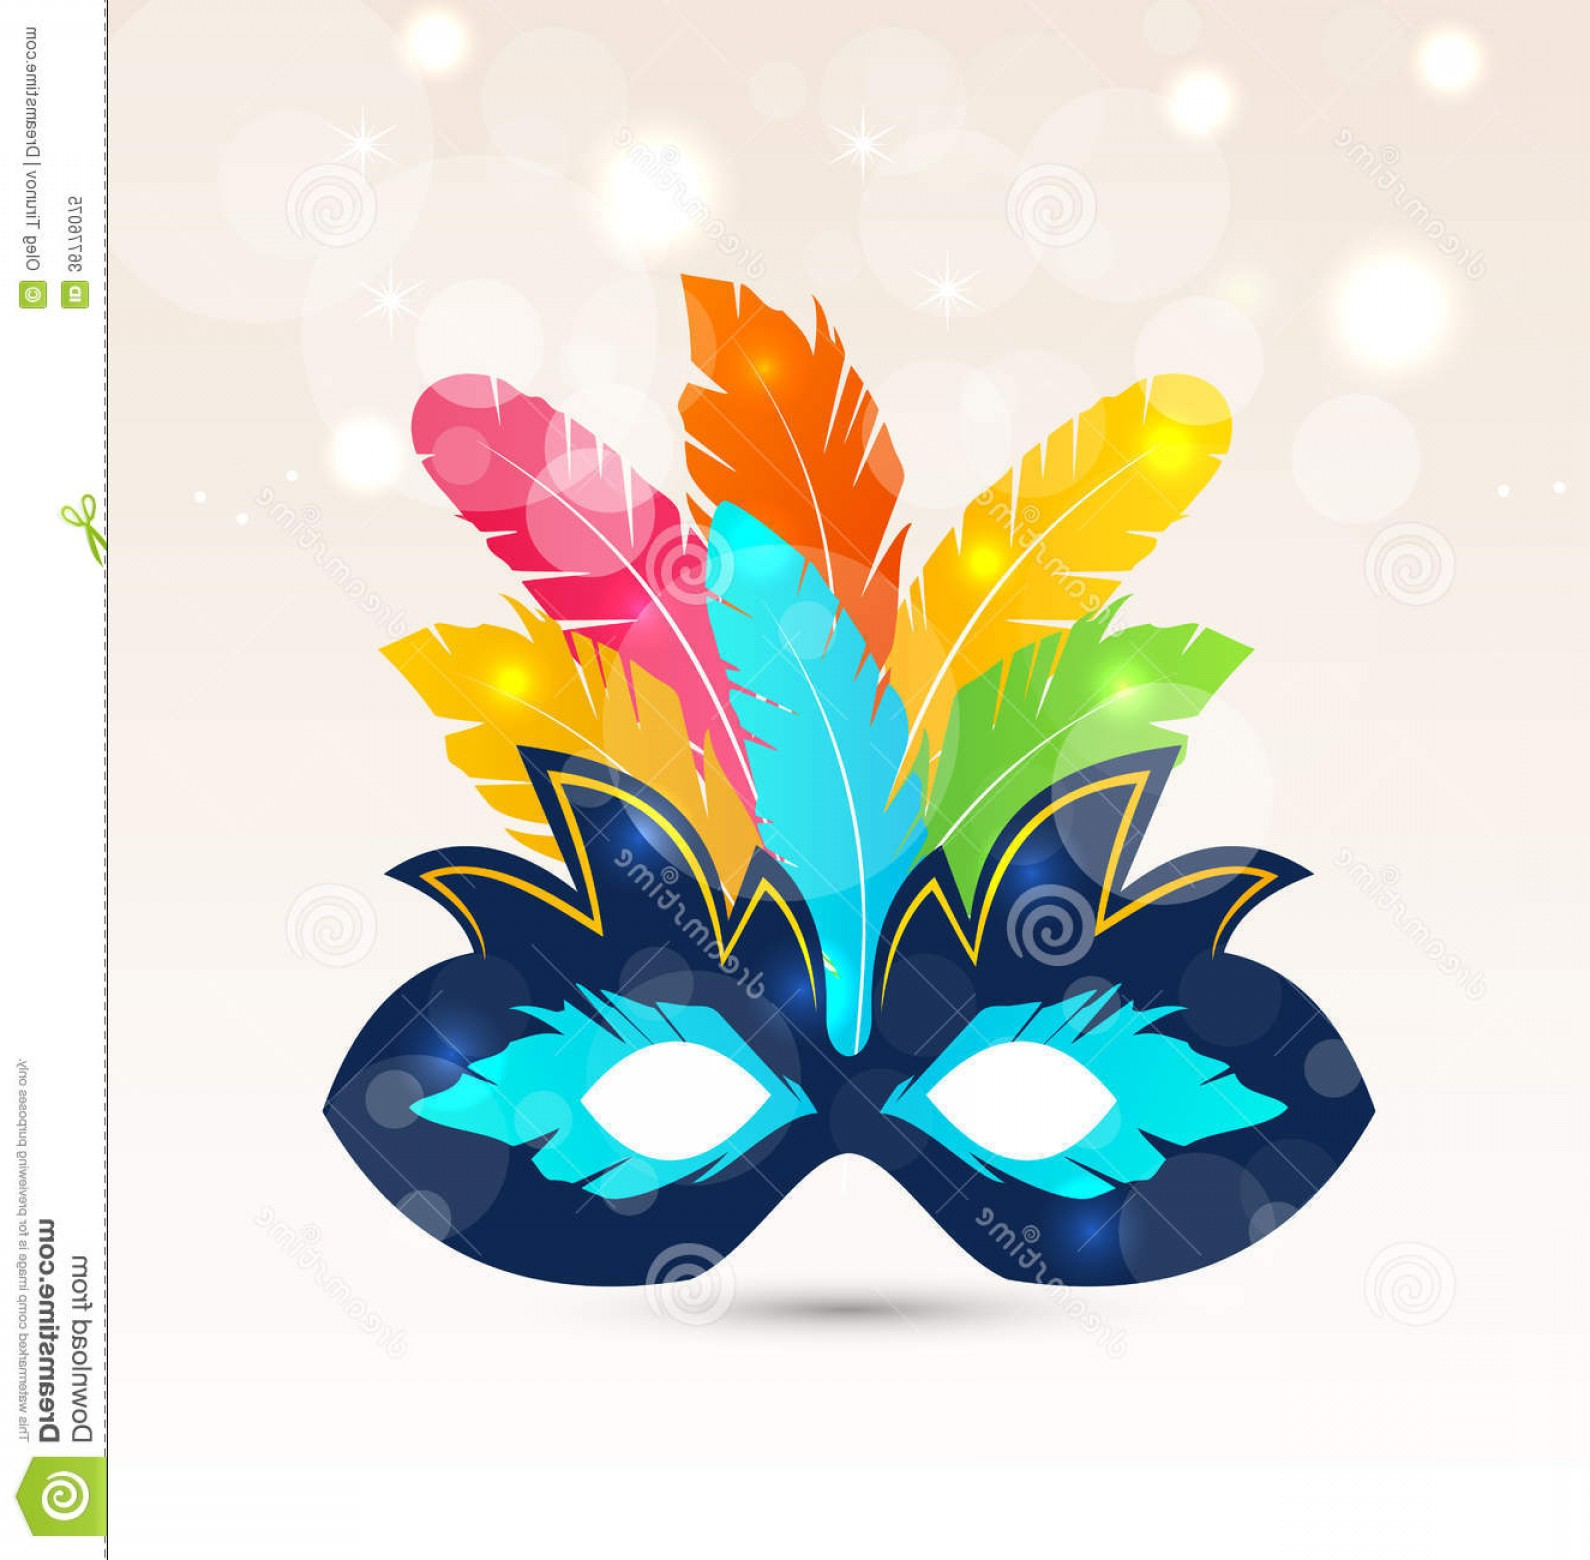 Carnival Vector Feather Art: Royalty Free Stock Photo Colorful Carnival Theater Mask Feathers Illustration Image